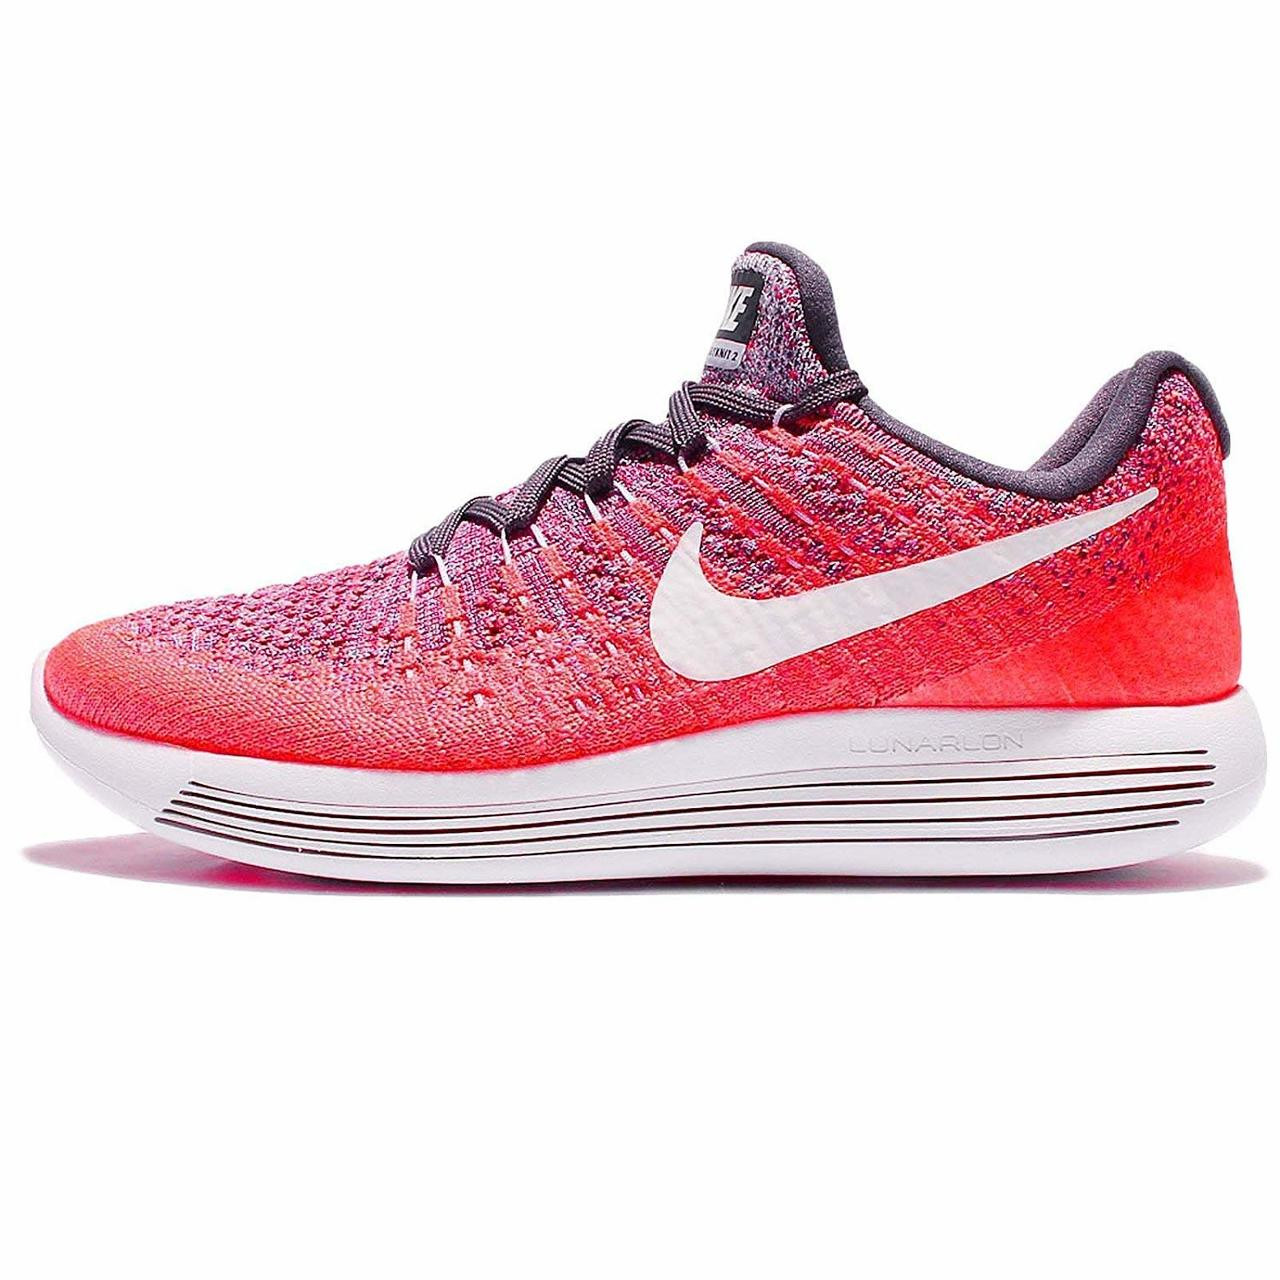 24996a6dd25eb Nike Womens Lunarepic Low Flyknit 2 Fabric Low Top Lace Up Running  Sneaker~pp-170f3cc5